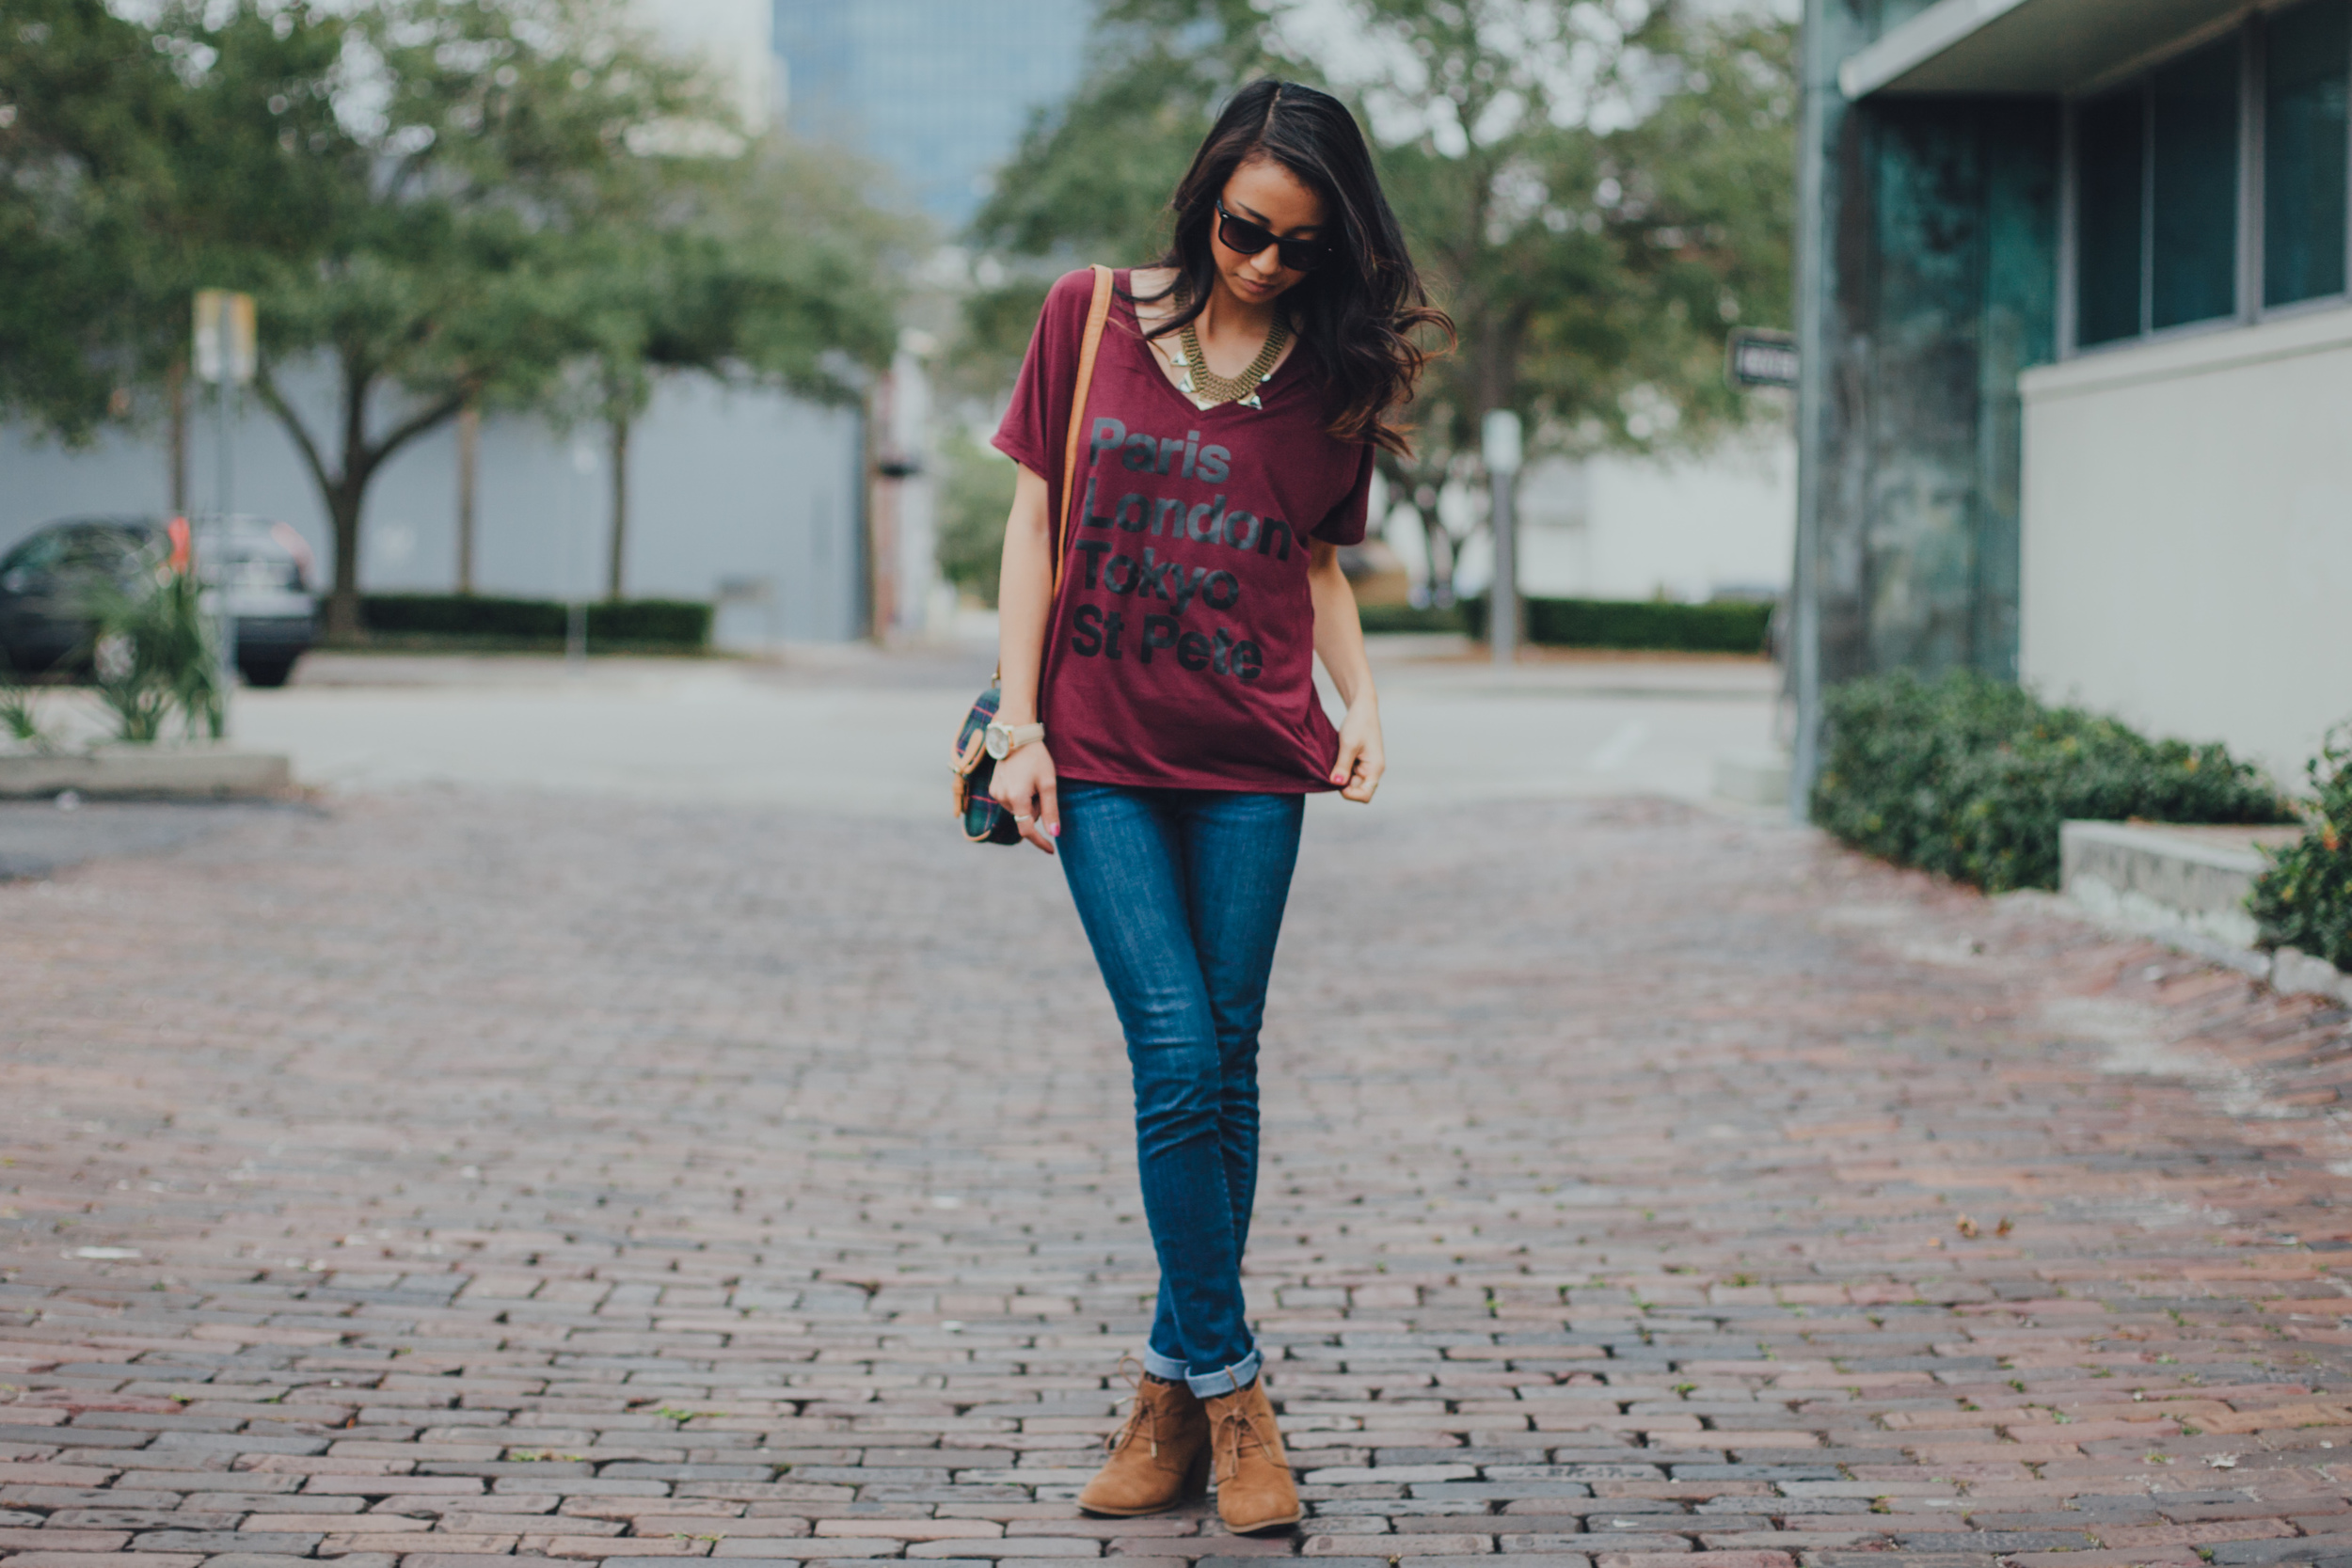 This Jenn Girl - MisRED Outfitters 3